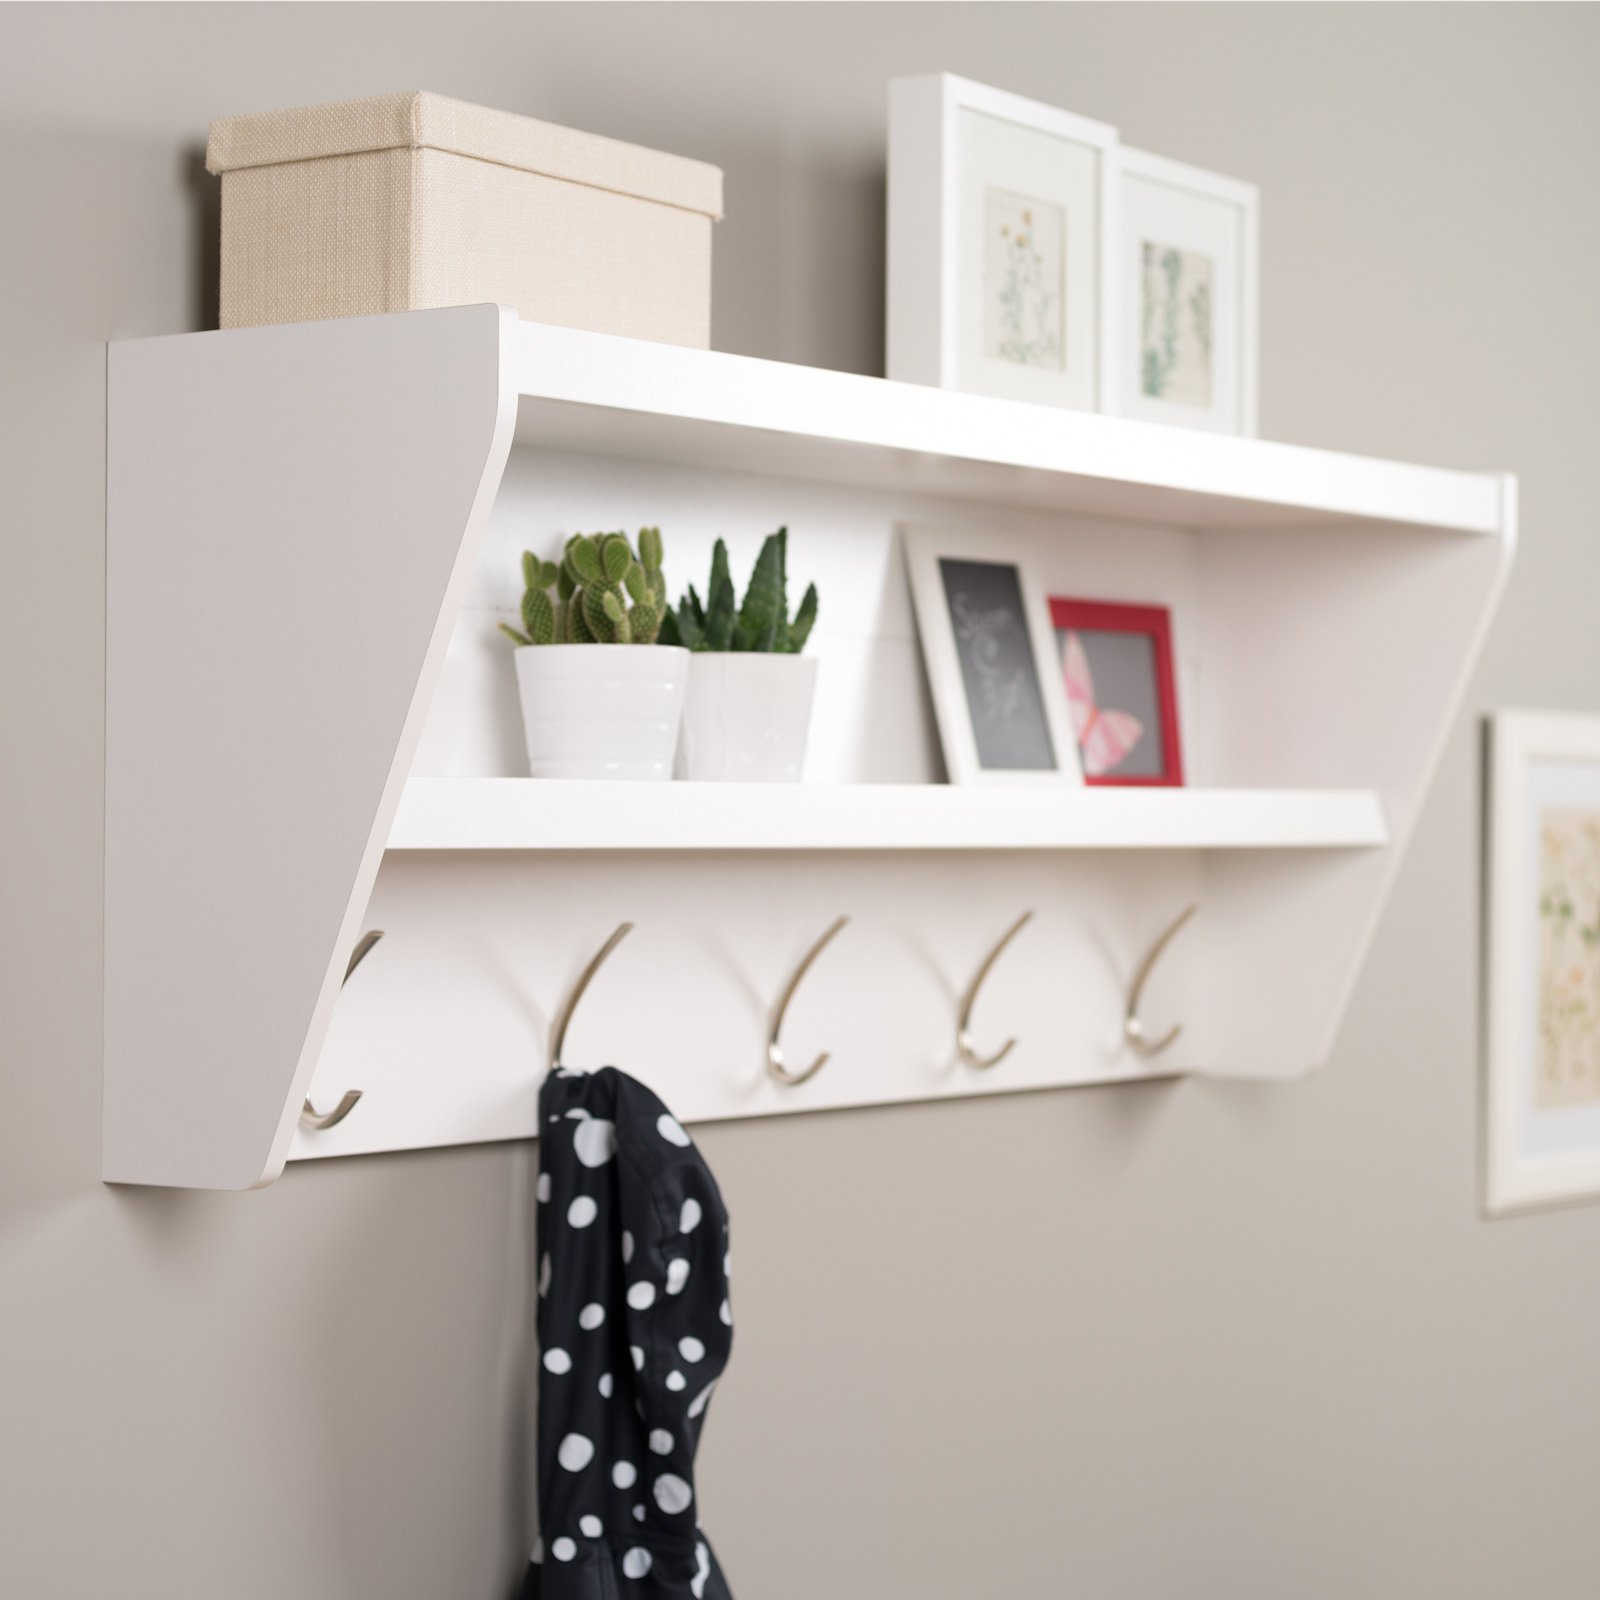 prepac floating entryway shelf and coat rack bookshelf wall brackets creative ideas chatham furniture vonhaus black shelves corner stand for bedroom boot shoe storage solutions